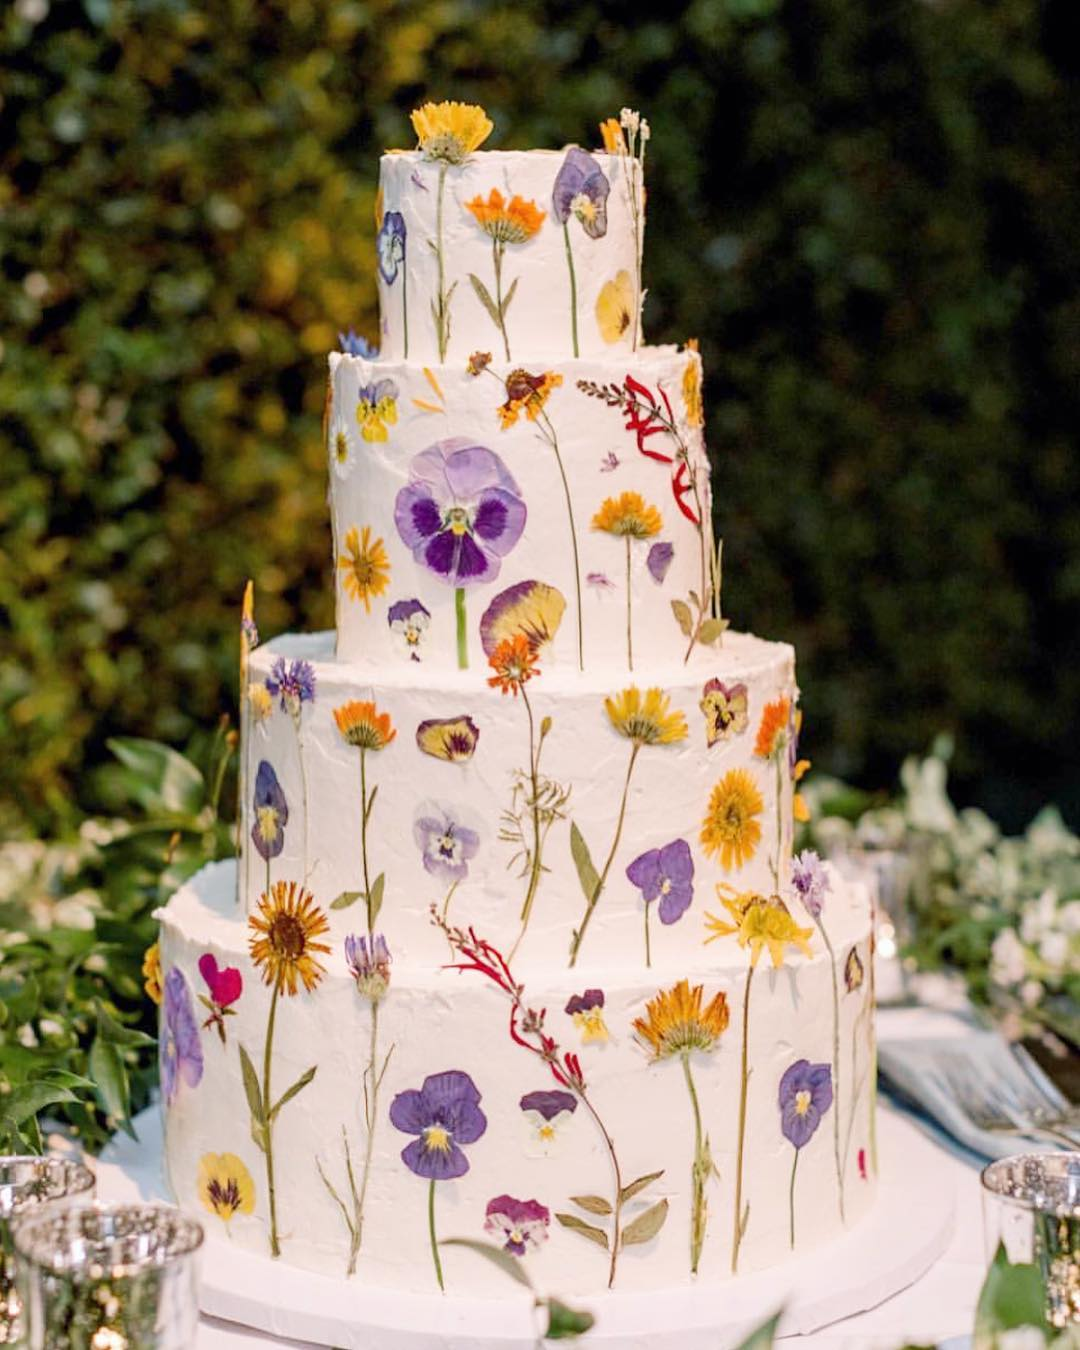 2020 wedding food trends | edible bloom cake